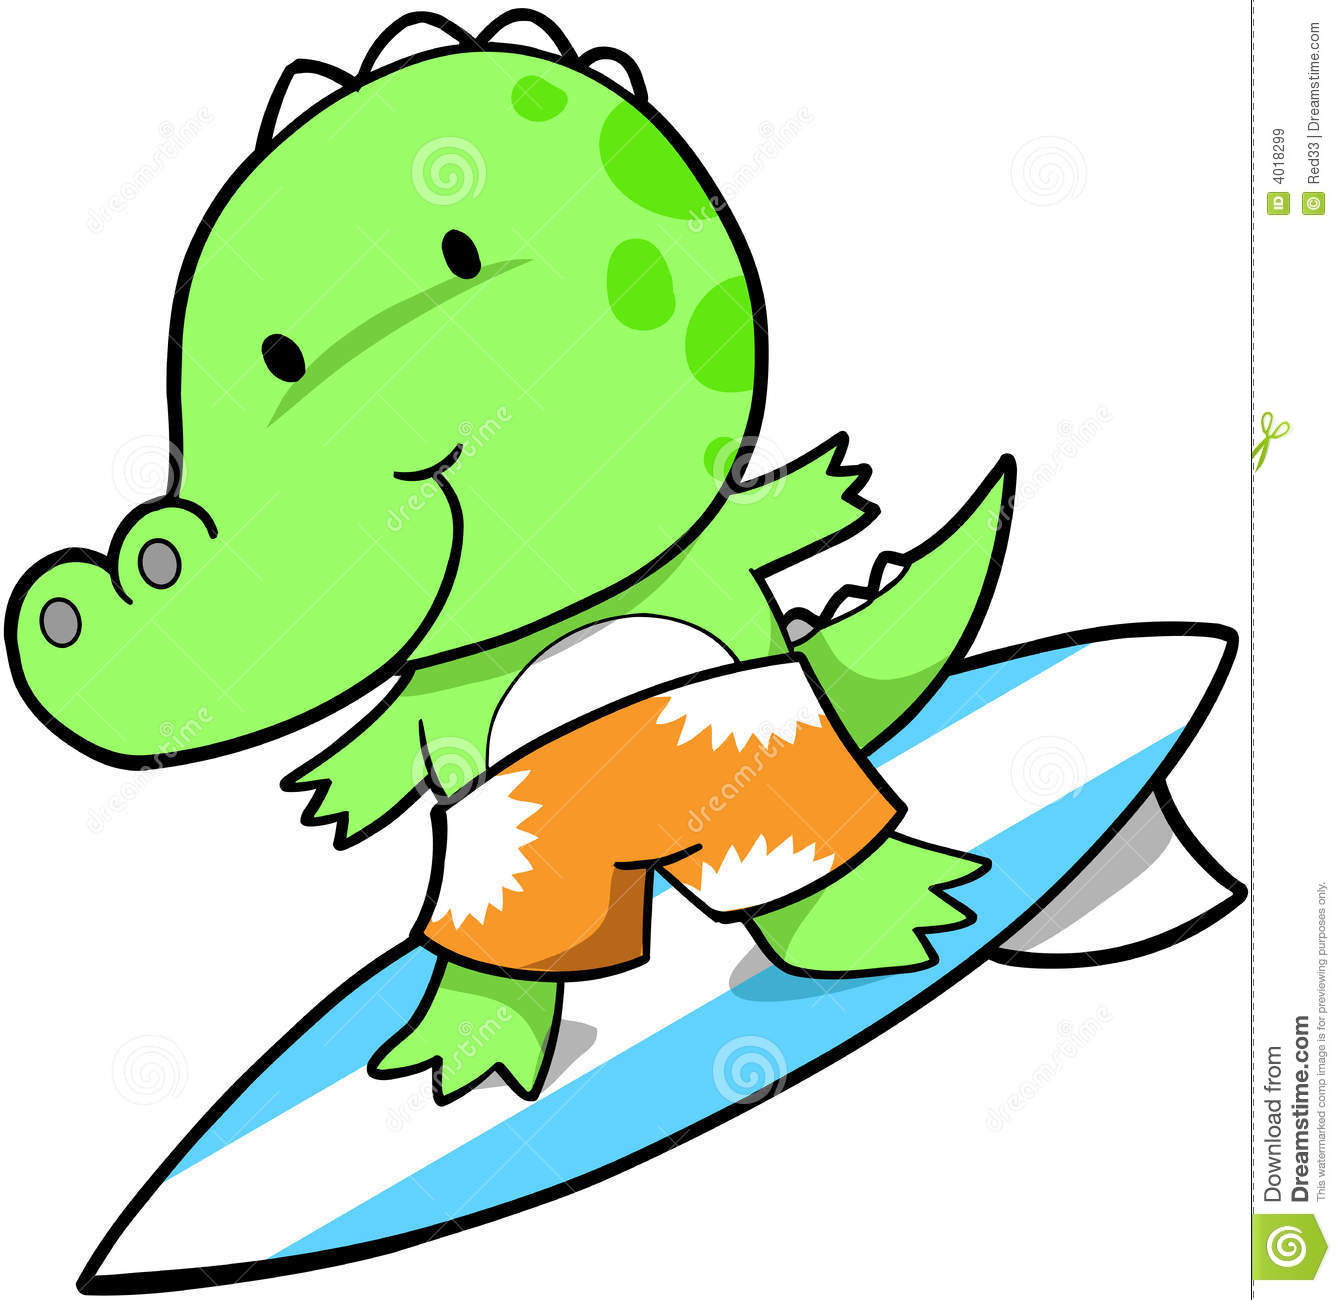 Cute Crocodile Cute surfing crocodile vector